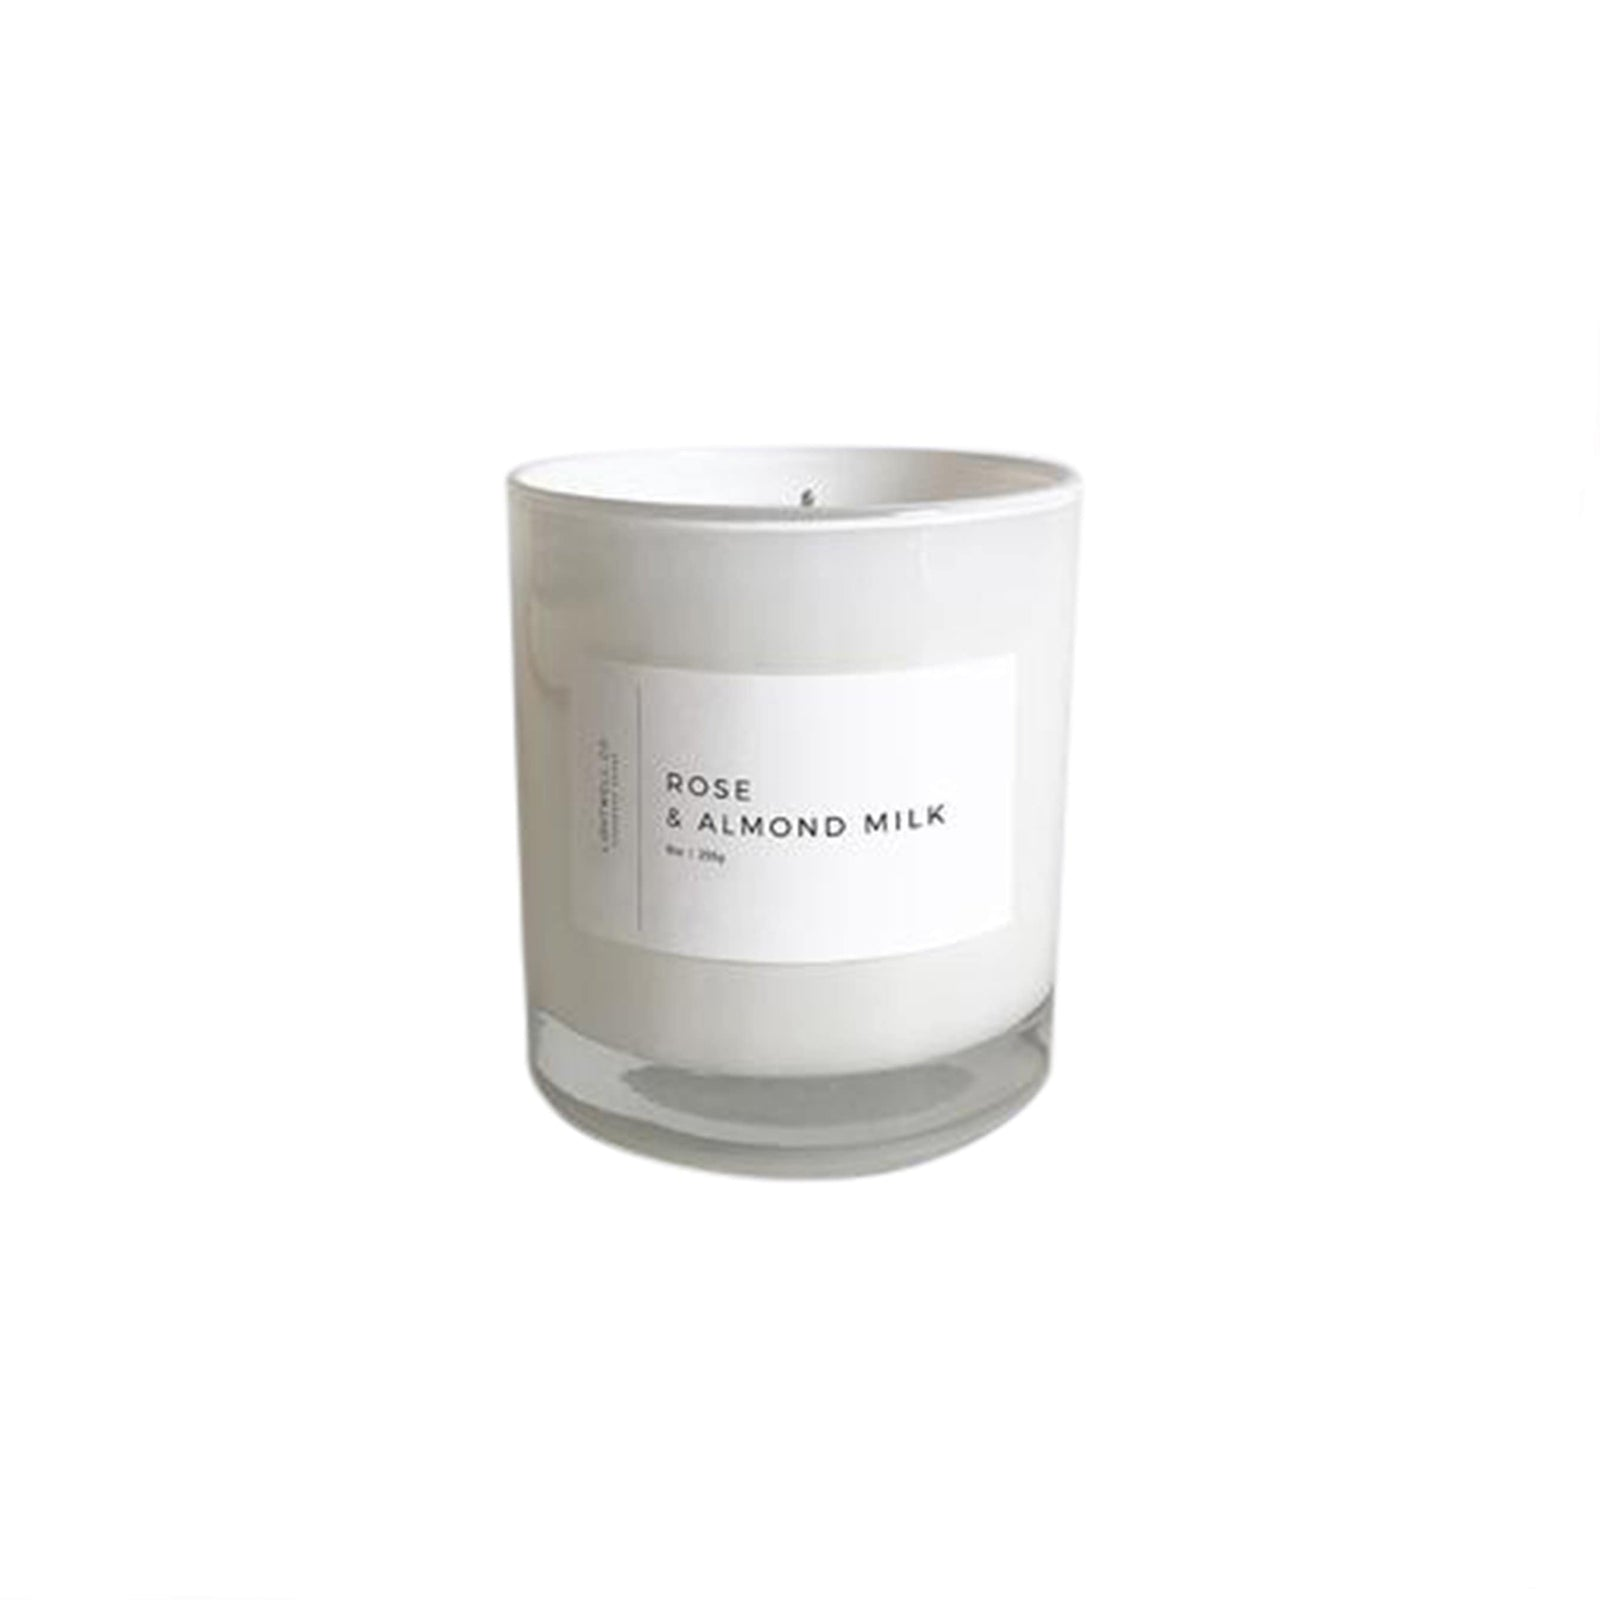 Lightwell Co. Candle Rose & Almond Milk White Tumbler Candle